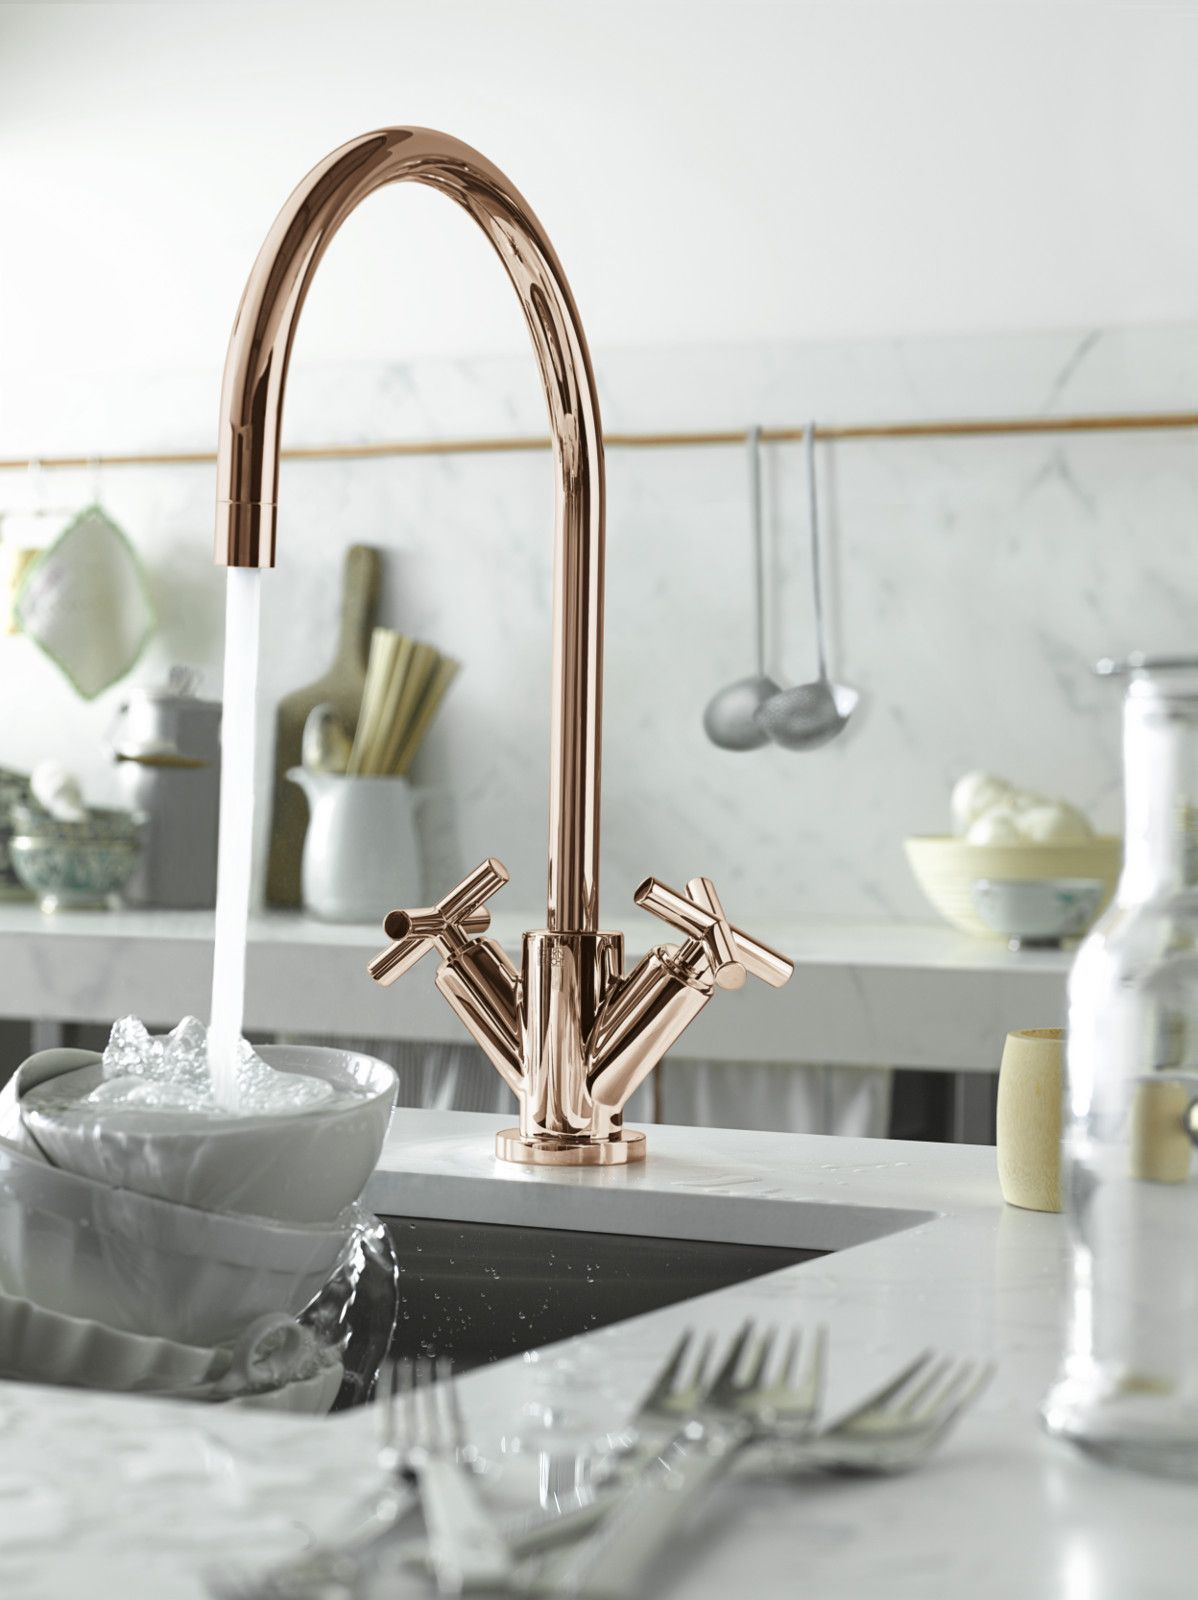 Tap Designs For Kitchens Dornbracht Tara Classic In Cyprum Rose Gold Finish So Pretty